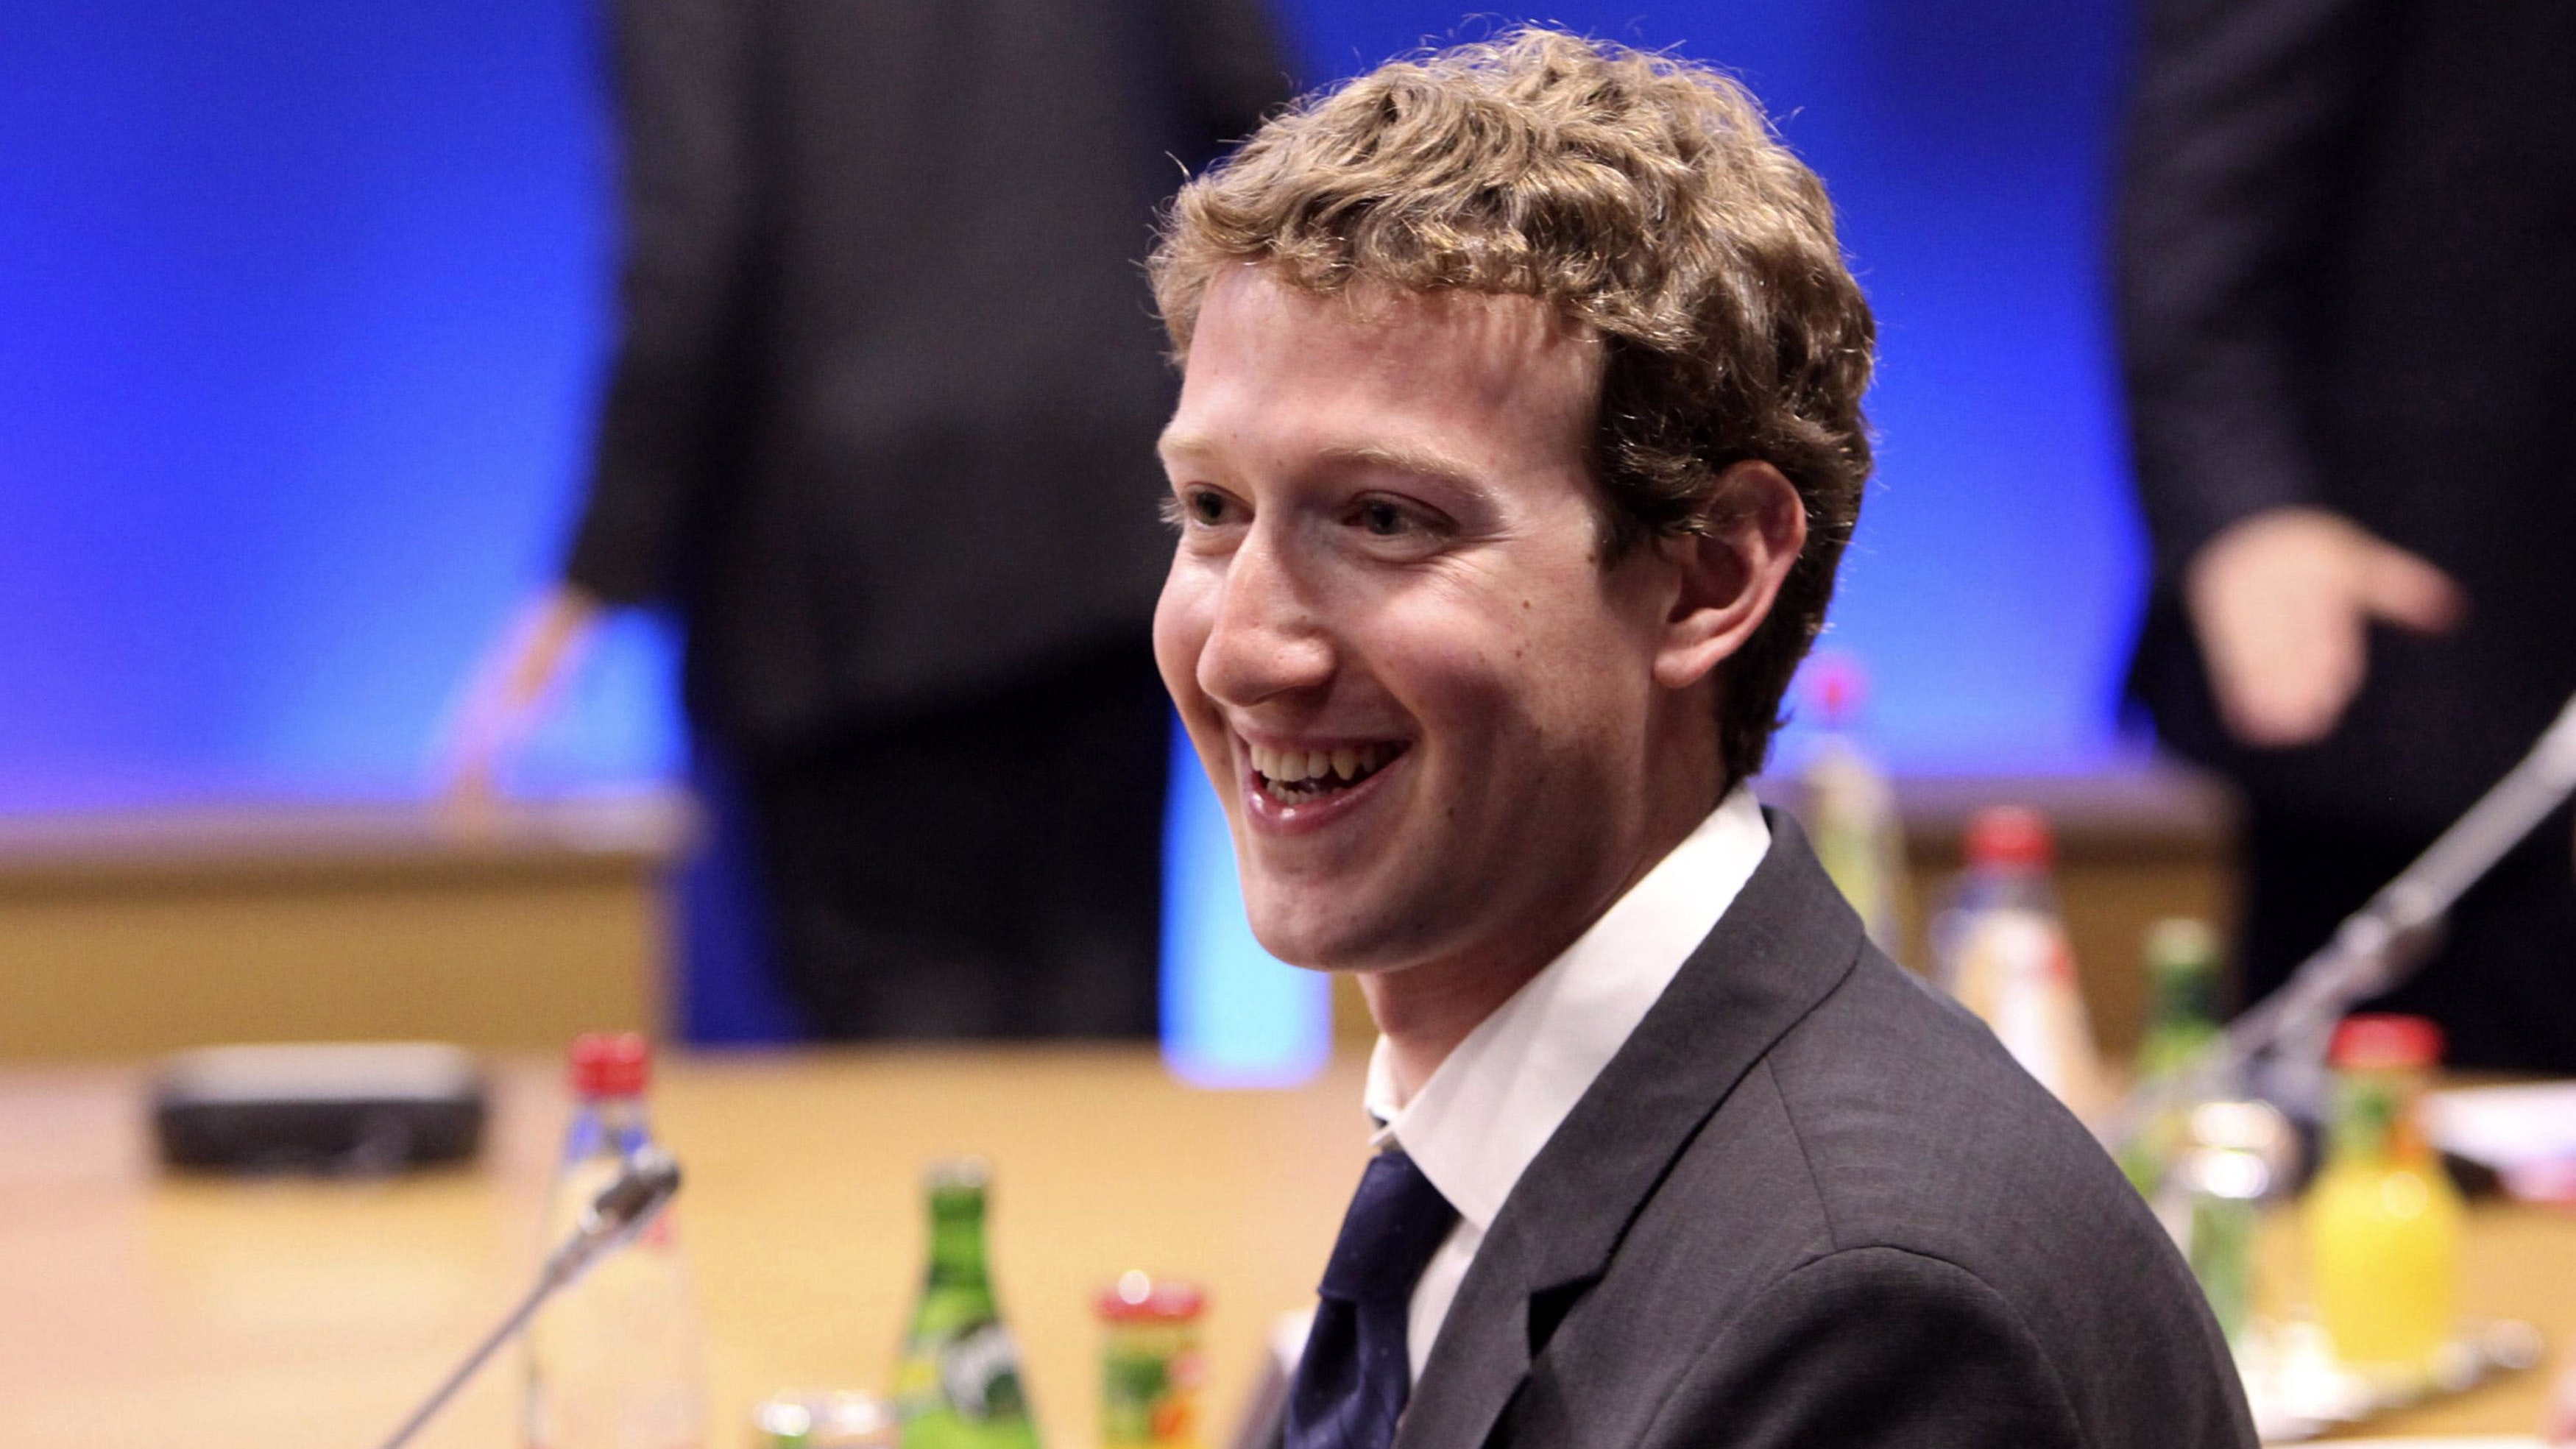 Facebook adding new features for dating, Mark Zuckerberg says